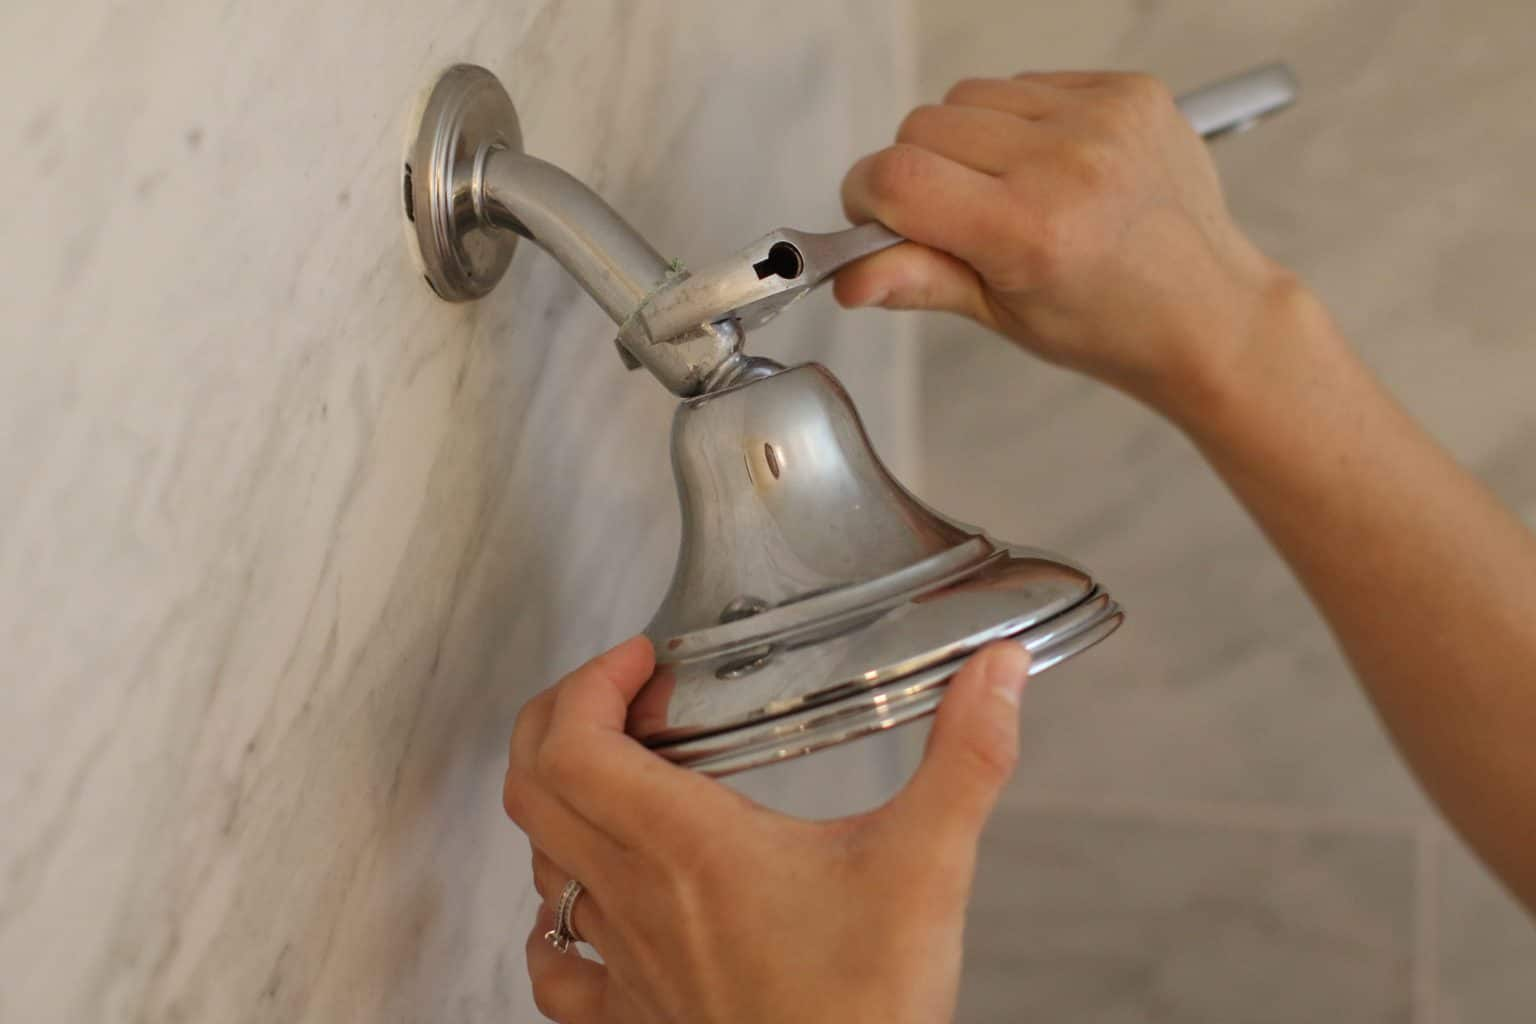 Removing a chrome shower head using a wrench